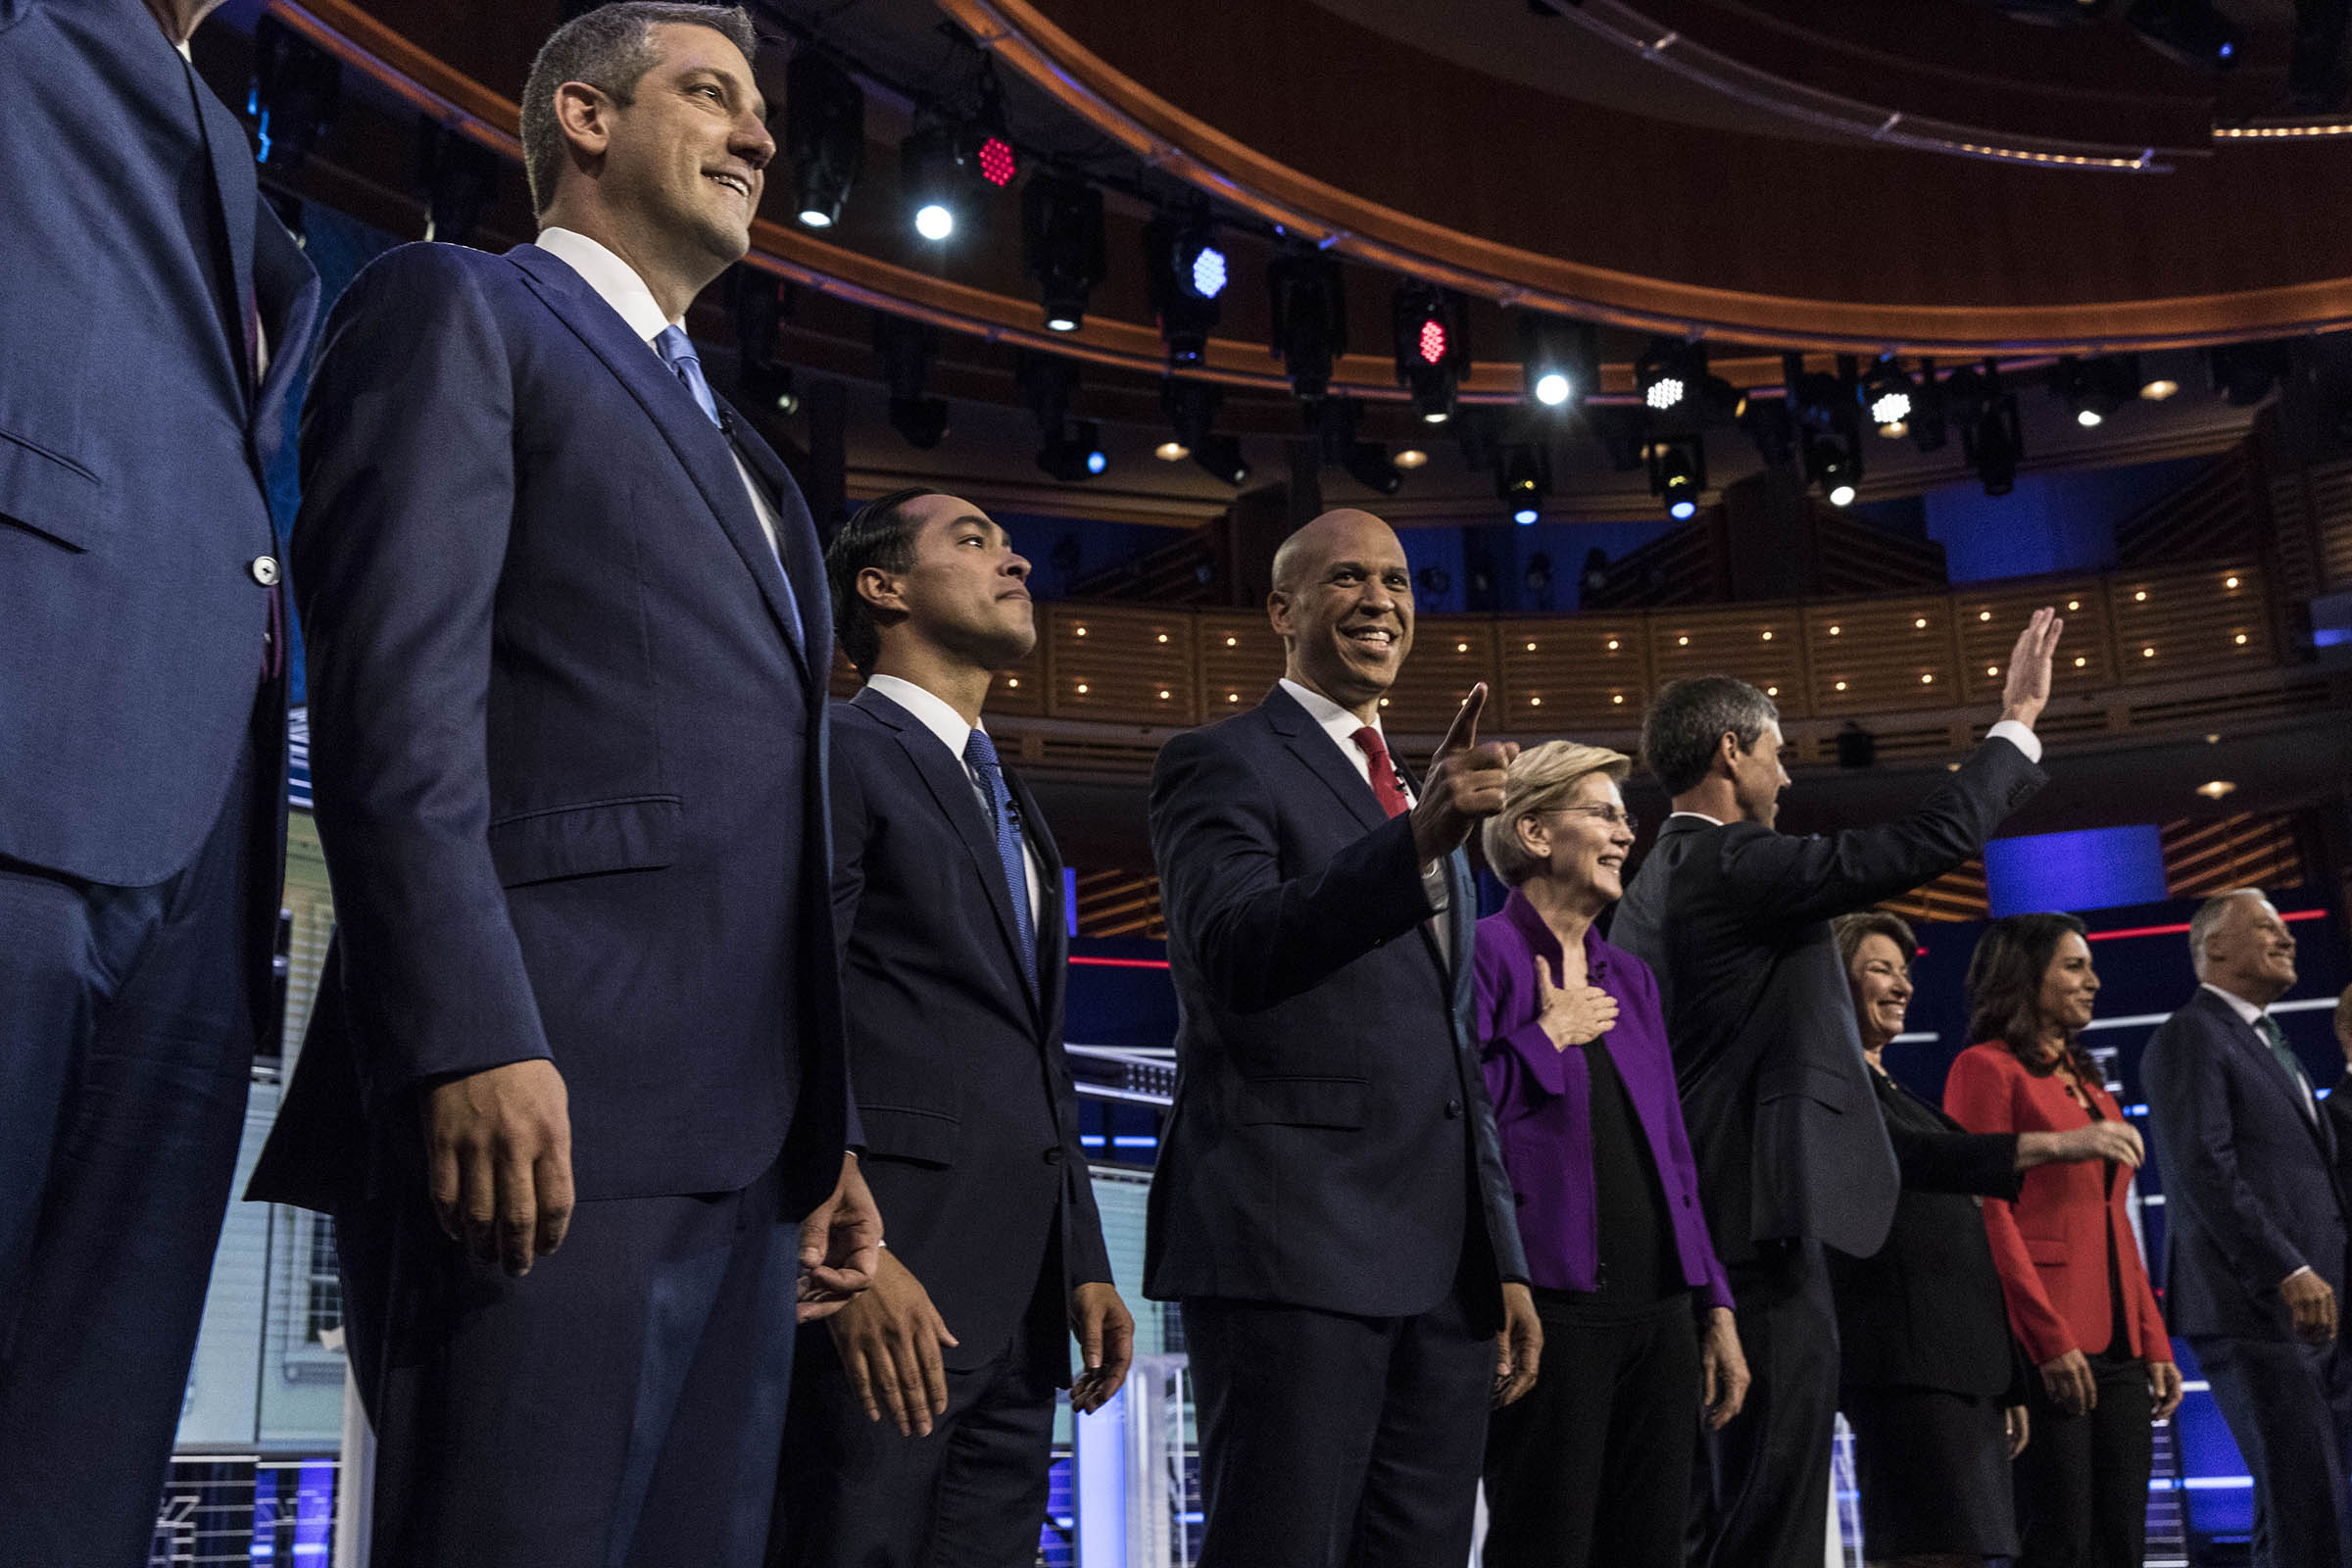 Democratic presidential candidates New York City Mayor Bill De Blasio (L-R), Rep. Tim Ryan (D-OH), former housing secretary Julian Castro, Sen. Cory Booker (D-NJ), Sen. Elizabeth Warren (D-MA), former Texas congressman Beto O'Rourke, Sen. Amy Klobuchar (D-MN), Rep. Tulsi Gabbard (D-HI), Washington Gov. Jay Inslee, take the stage during the first night of the Democratic presidential debate on June 26, 2019 in Miami, Florida.